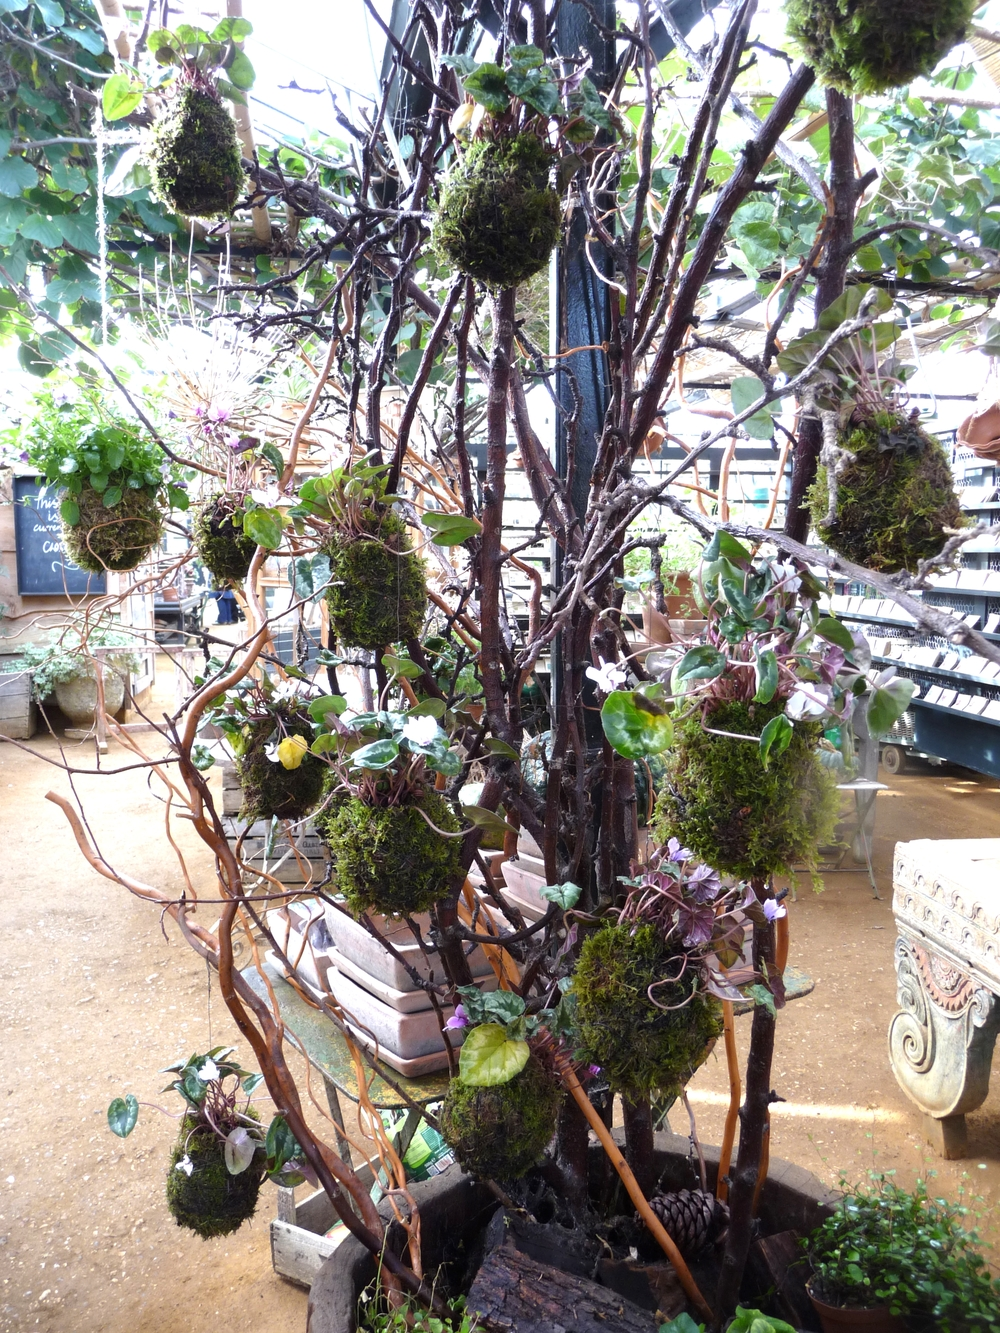 Clever display of plants which are wrapped in Sphagnum moss and chicken wire or twine to hold the soil and moss in place.